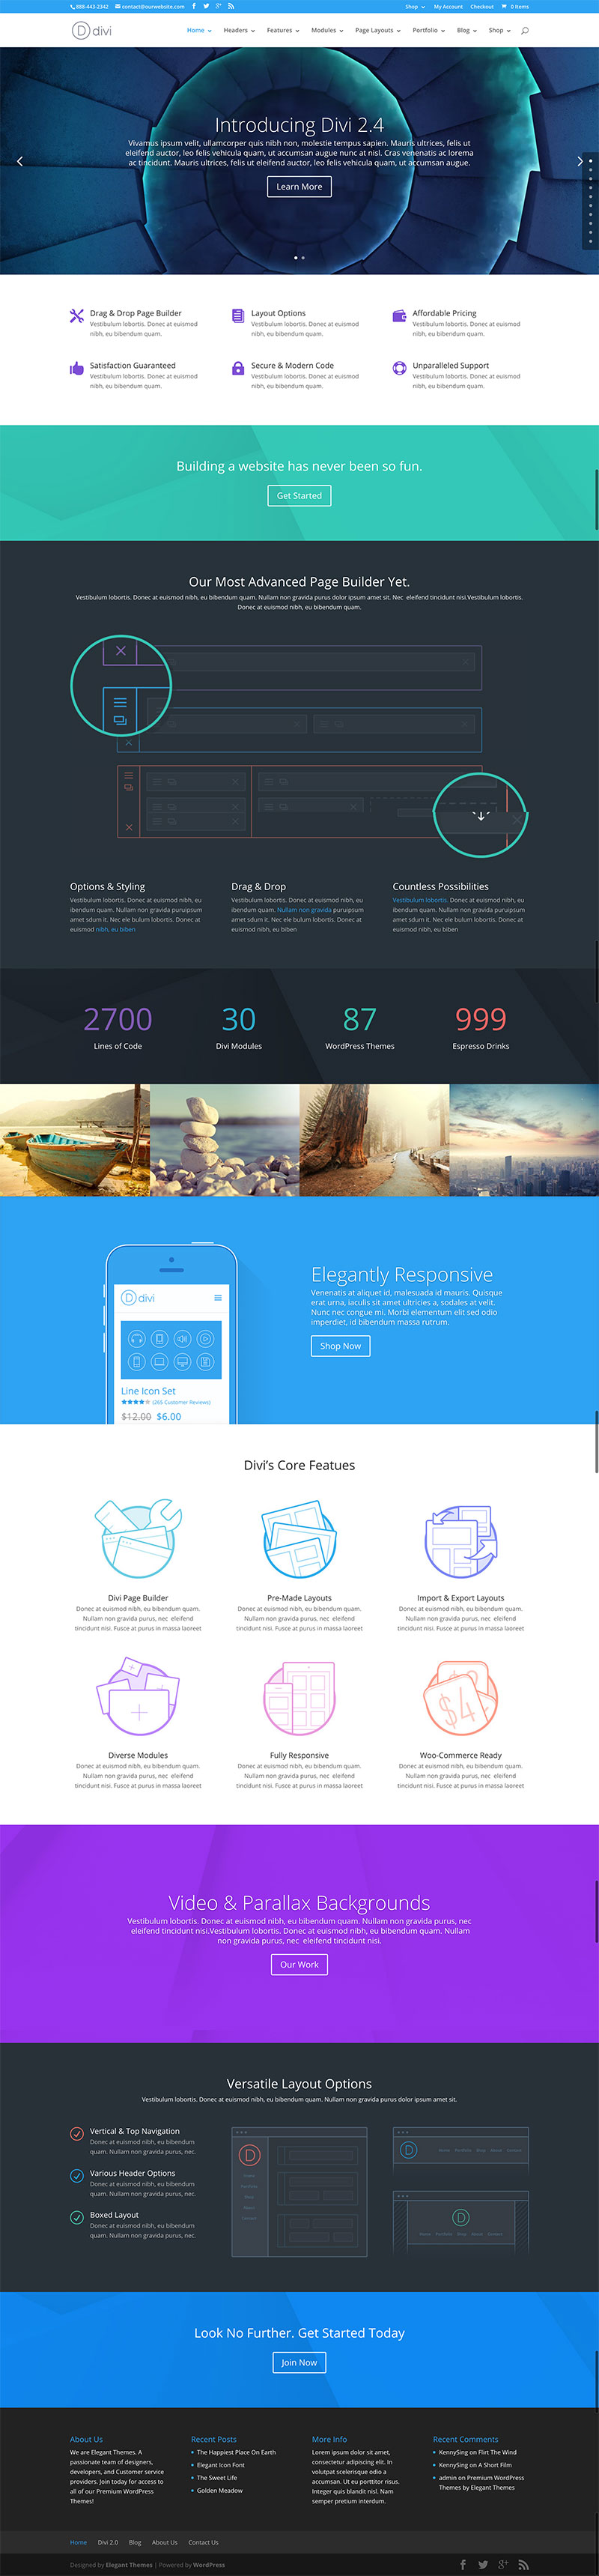 Divi wordpress theme review why it is worth all the hype - Divi wordpress theme ...